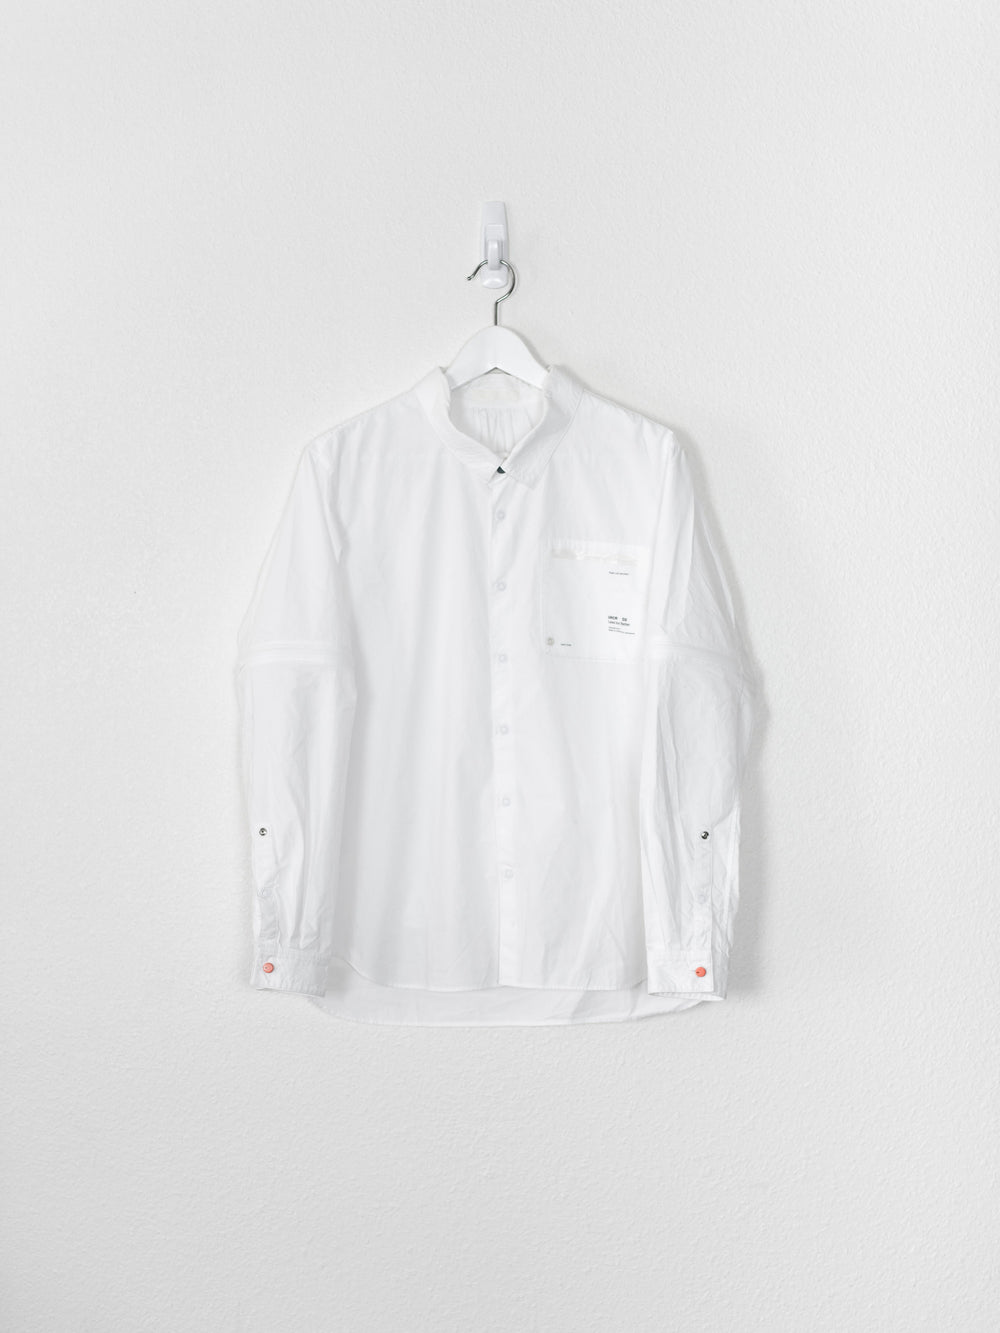 Undercover SS10 Less But Better Convertible Sleeve Shirt